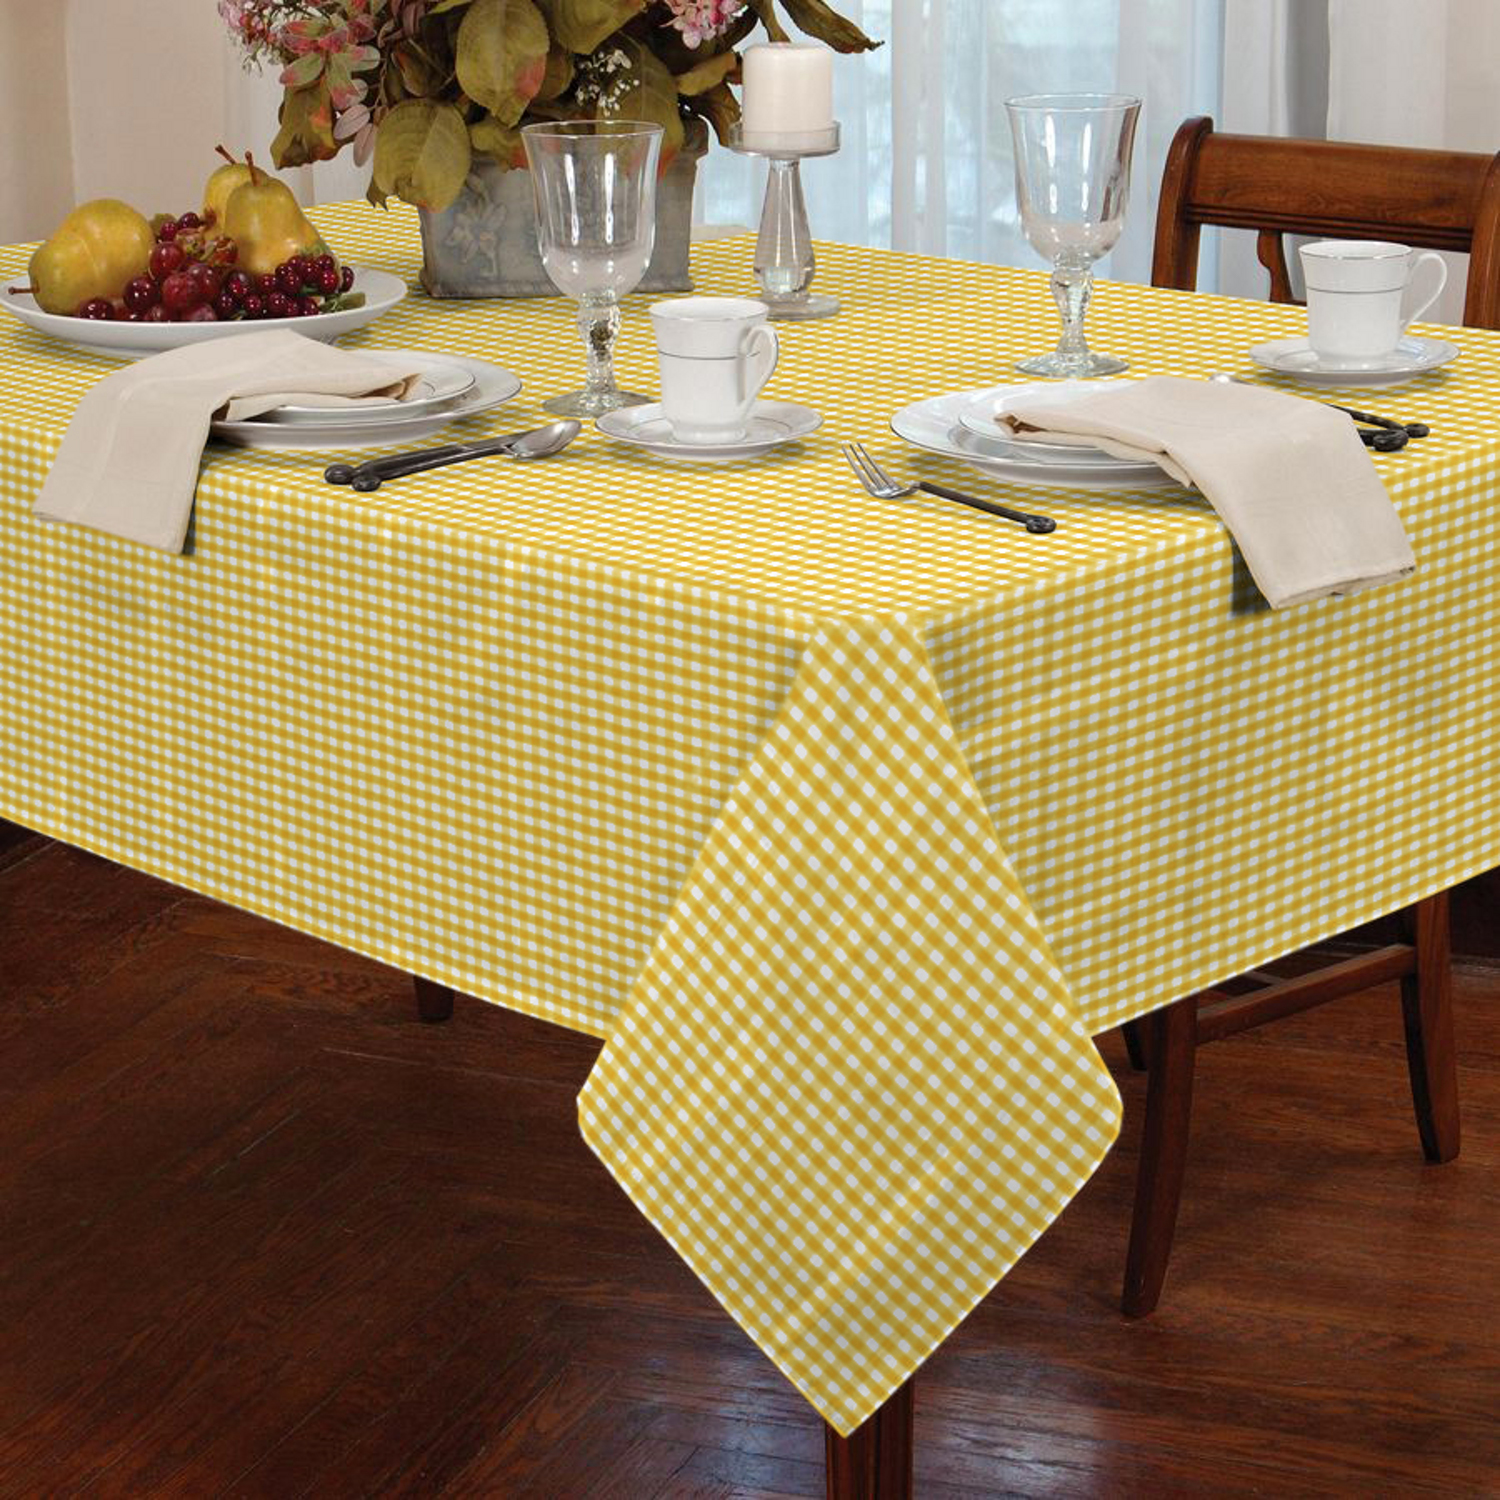 Garden Picnic Gingham Check Tablecloth Dining Room Table